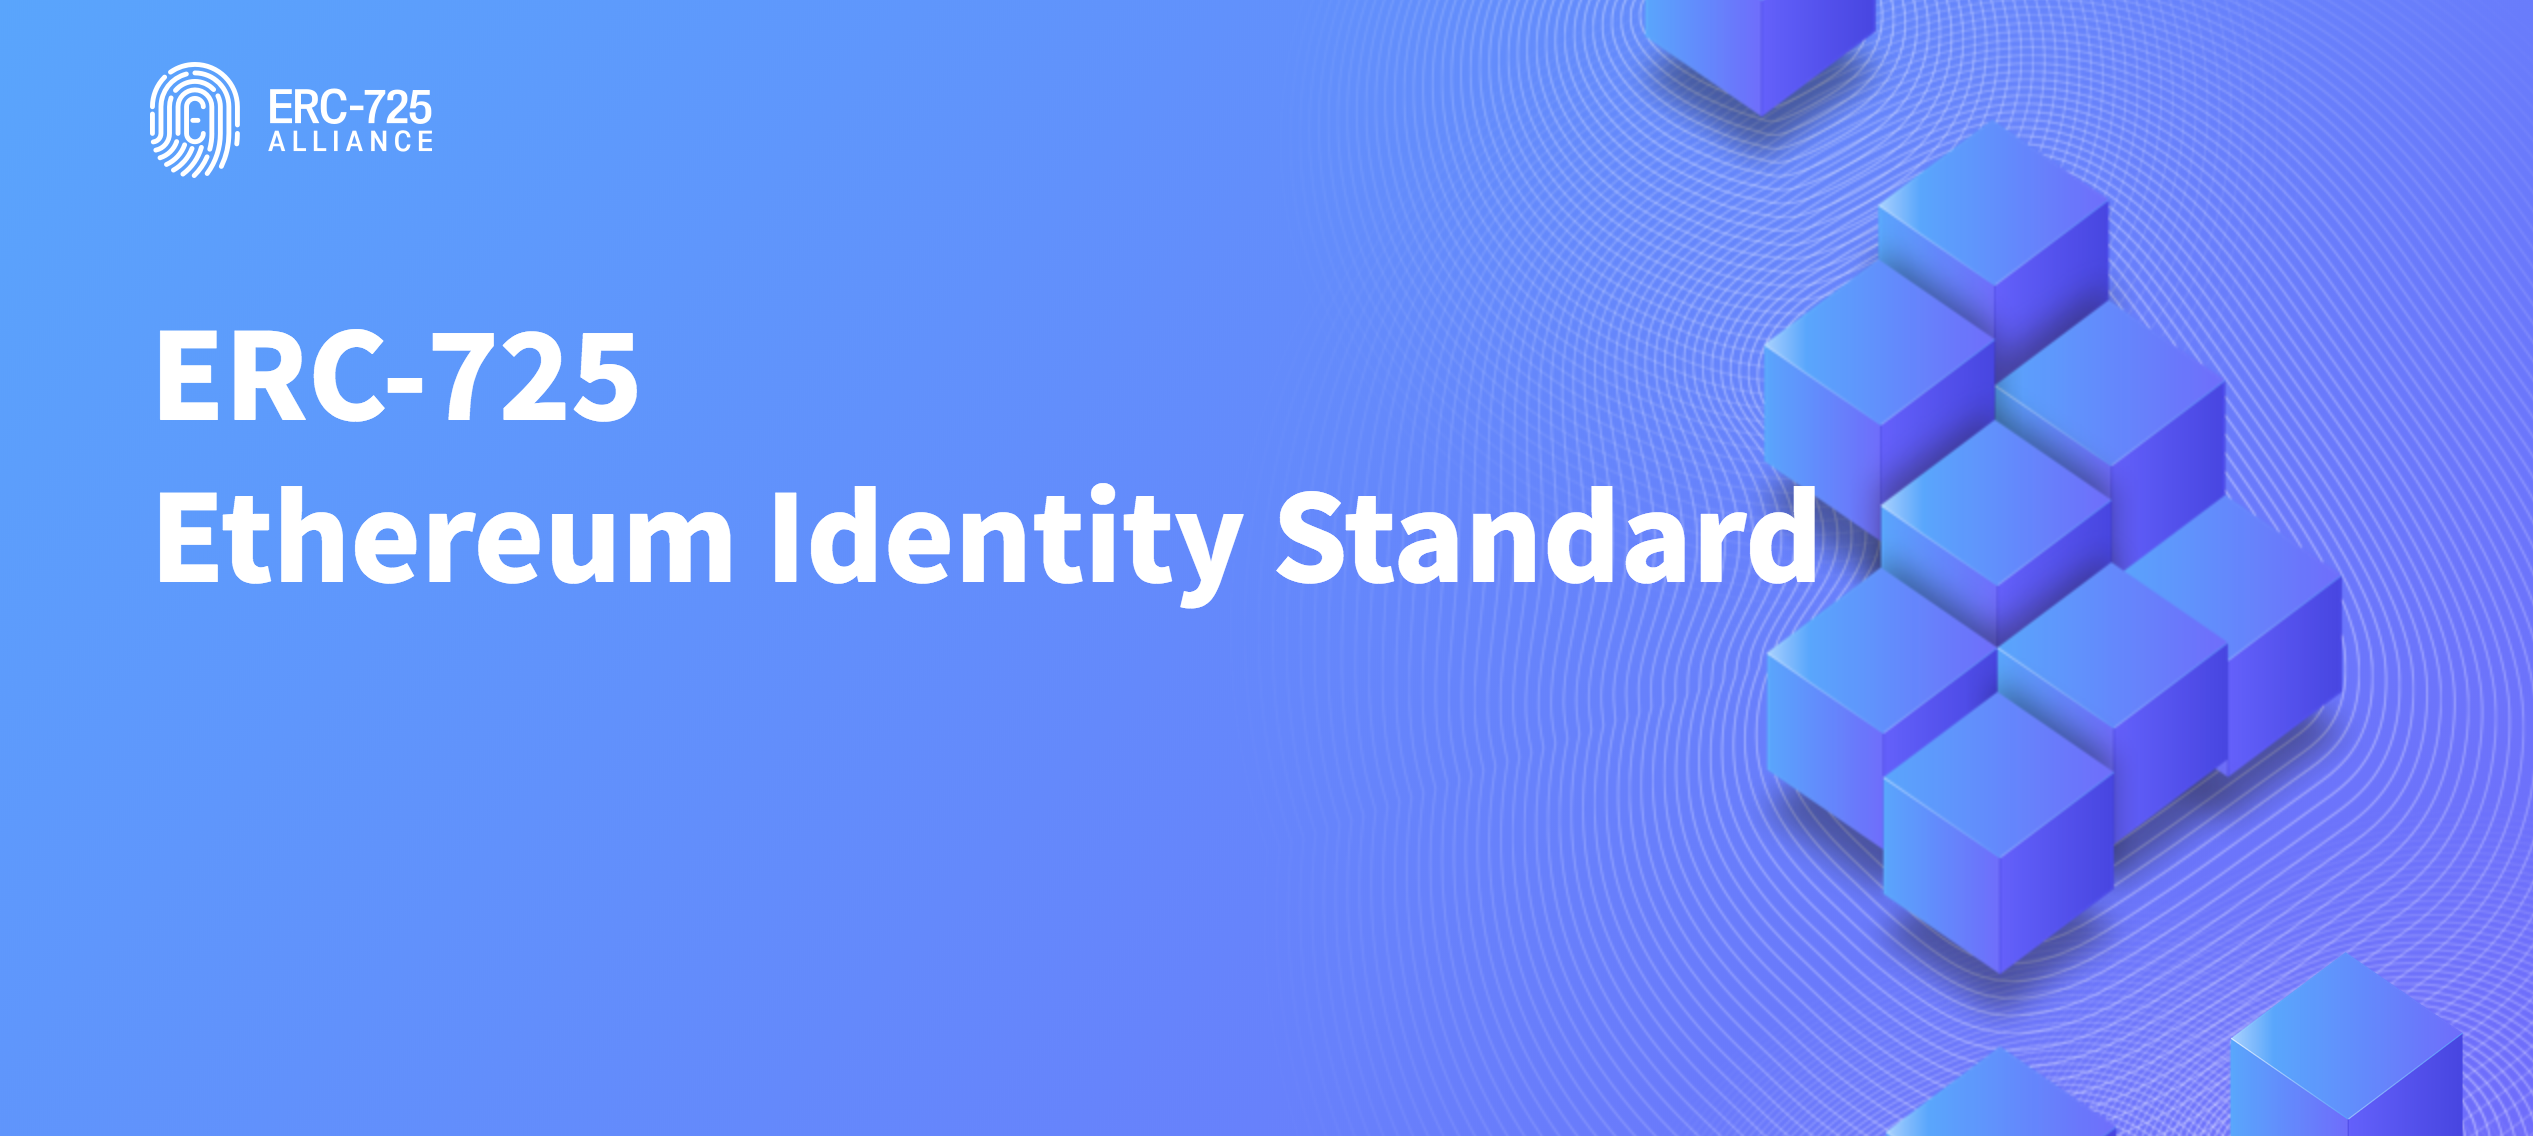 Origin Protocol Partners on New ERC 725 Alliance to Promote the Adoption of Blockchain-Based Identity Standard